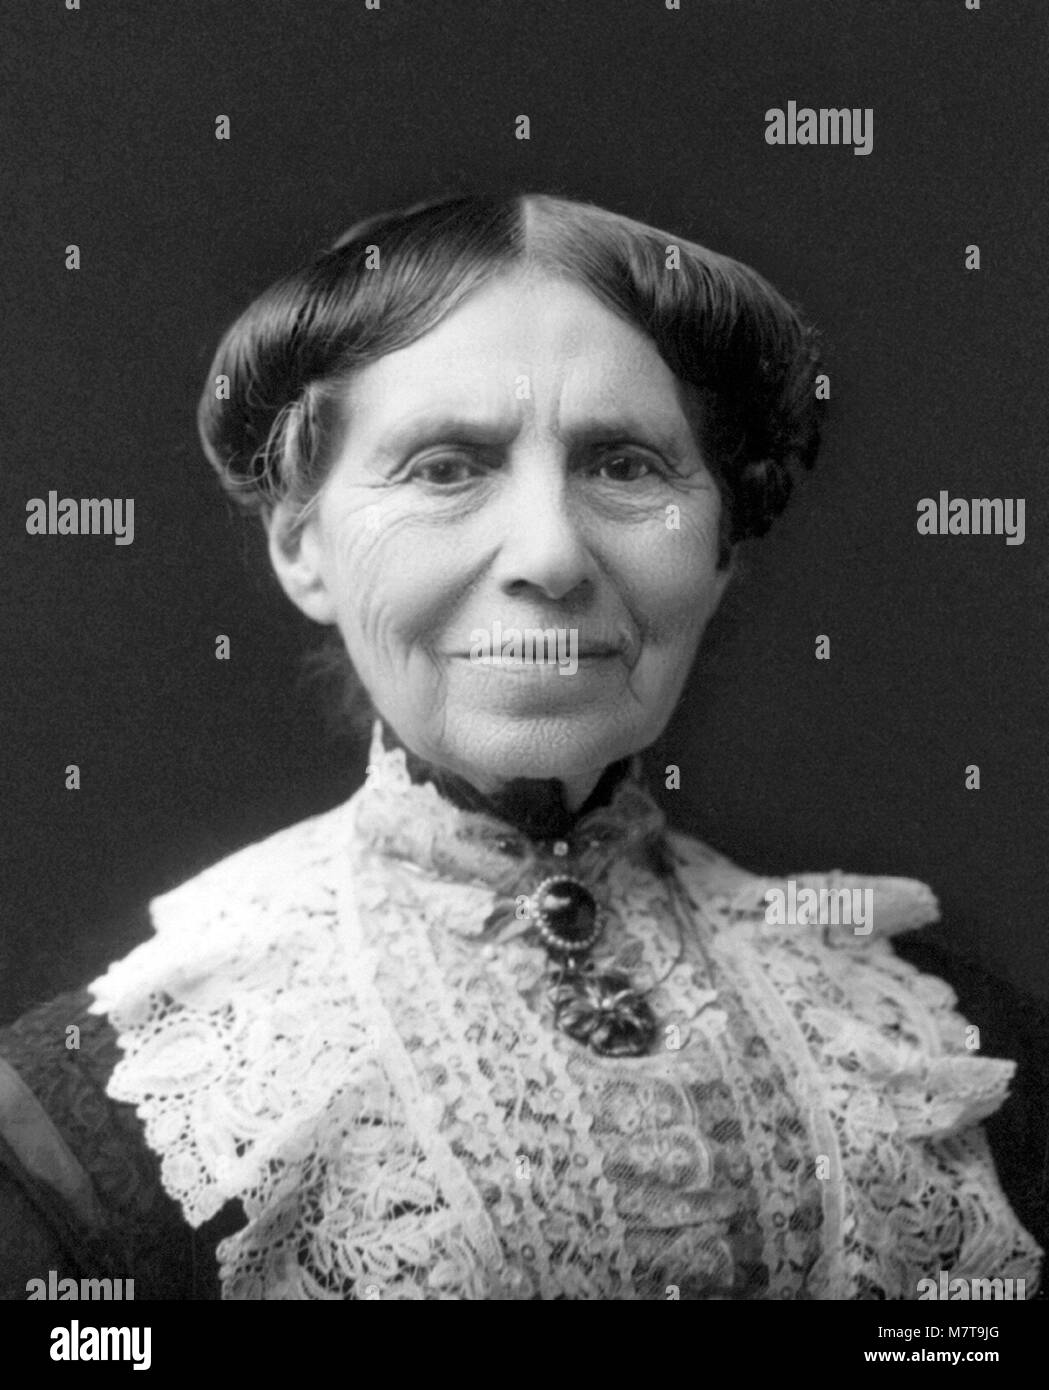 Clara Barton. Portrait of the nurse and founder of the American Red Cross, Clarissa 'Clara' Harlowe Barton - Stock Image